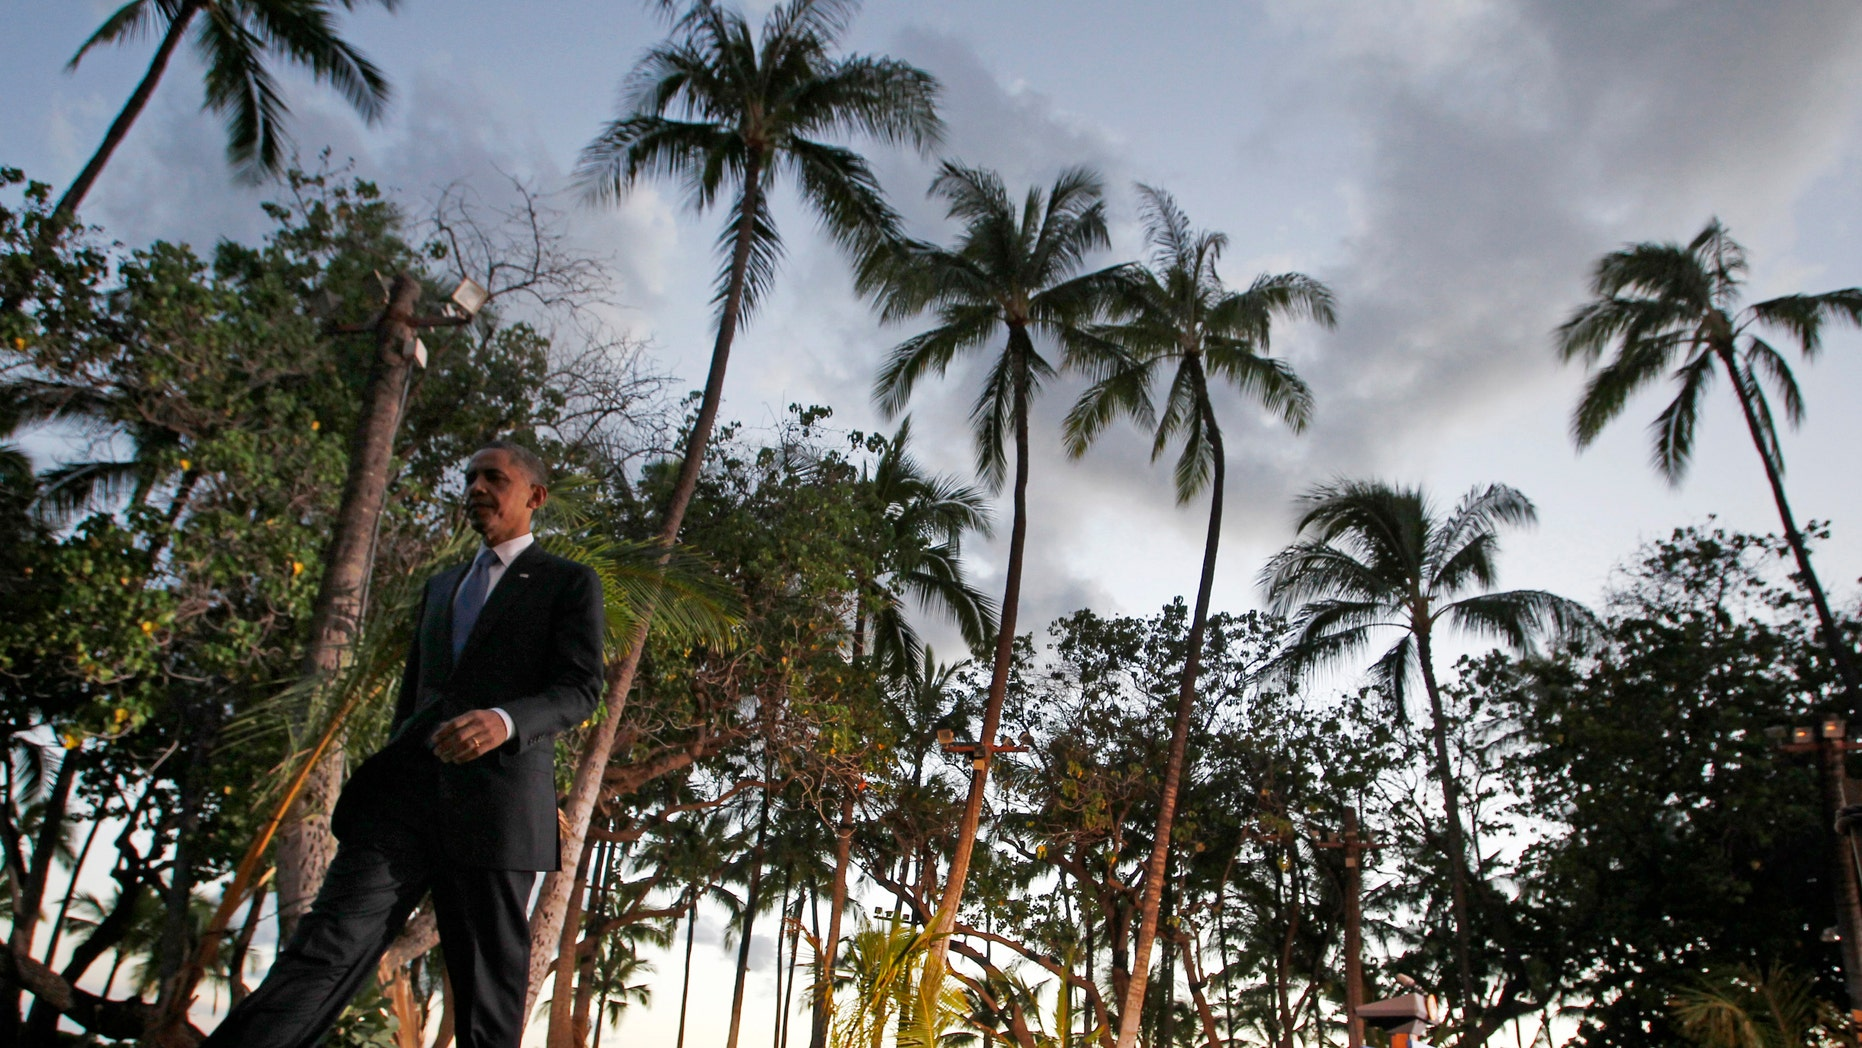 FILE: Nov. 13, 2011: President Obama at the APEC Summit in Honolulu, Hawaii, his home state and potential site of the future Obama presidential library.